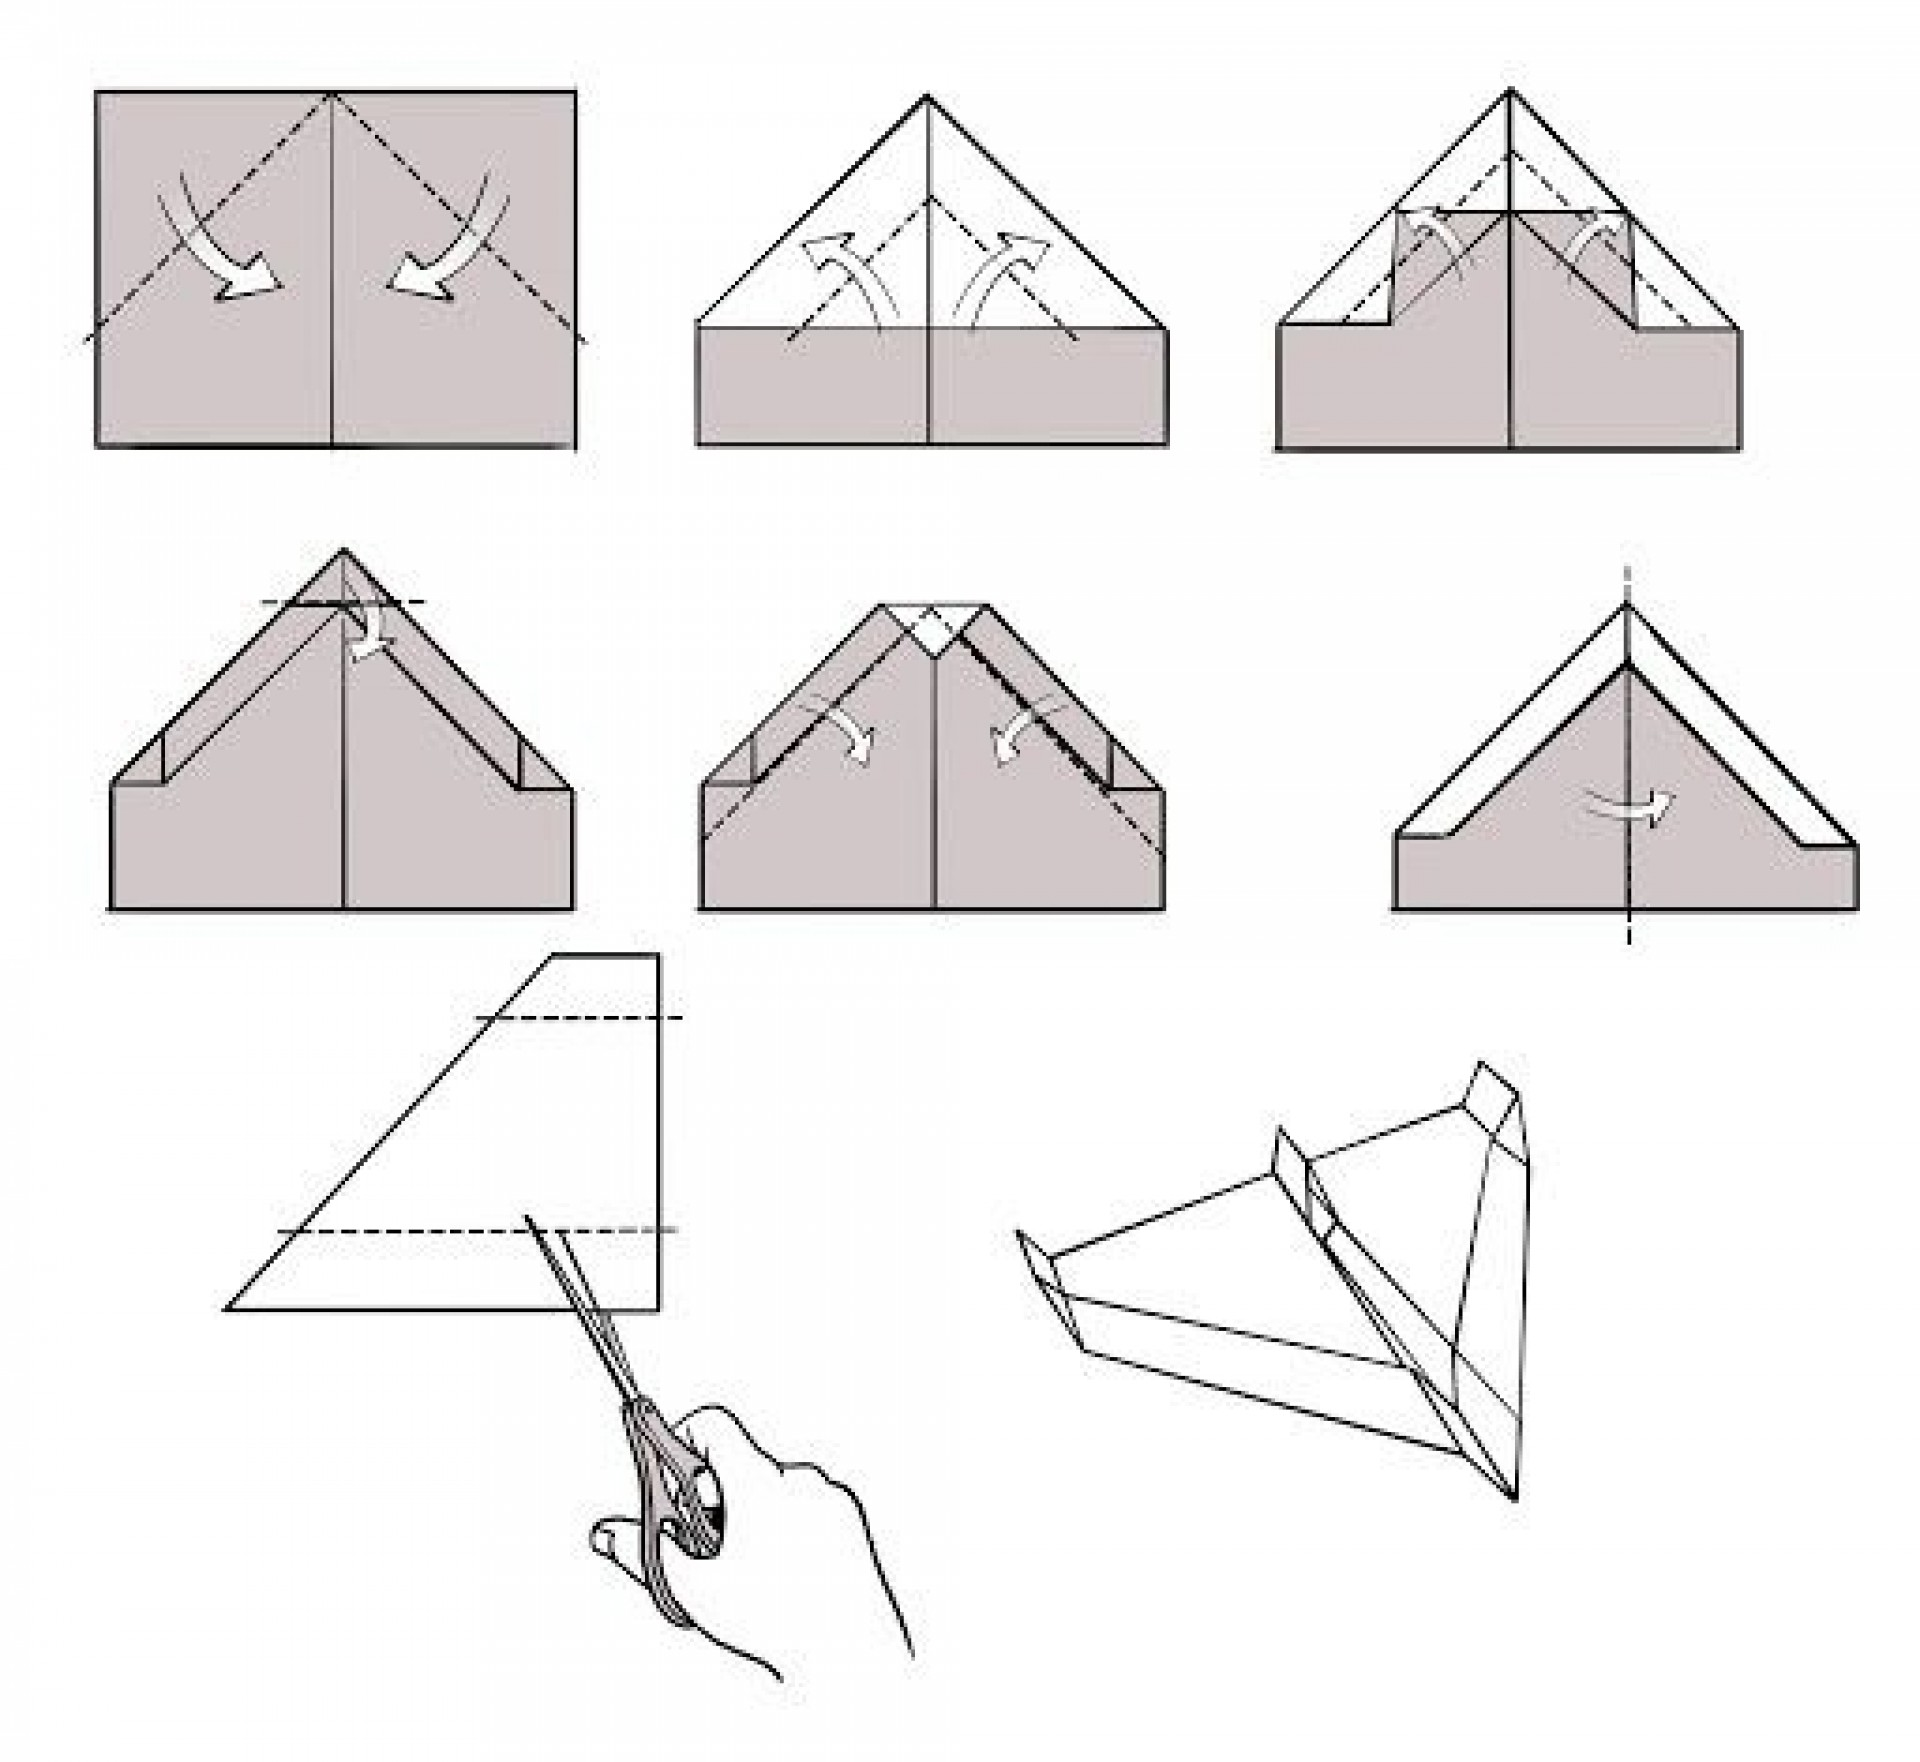 009 Astounding Paper Airplane Design Printable Inspiration  Free Instruction Pdf Simple Folding1920